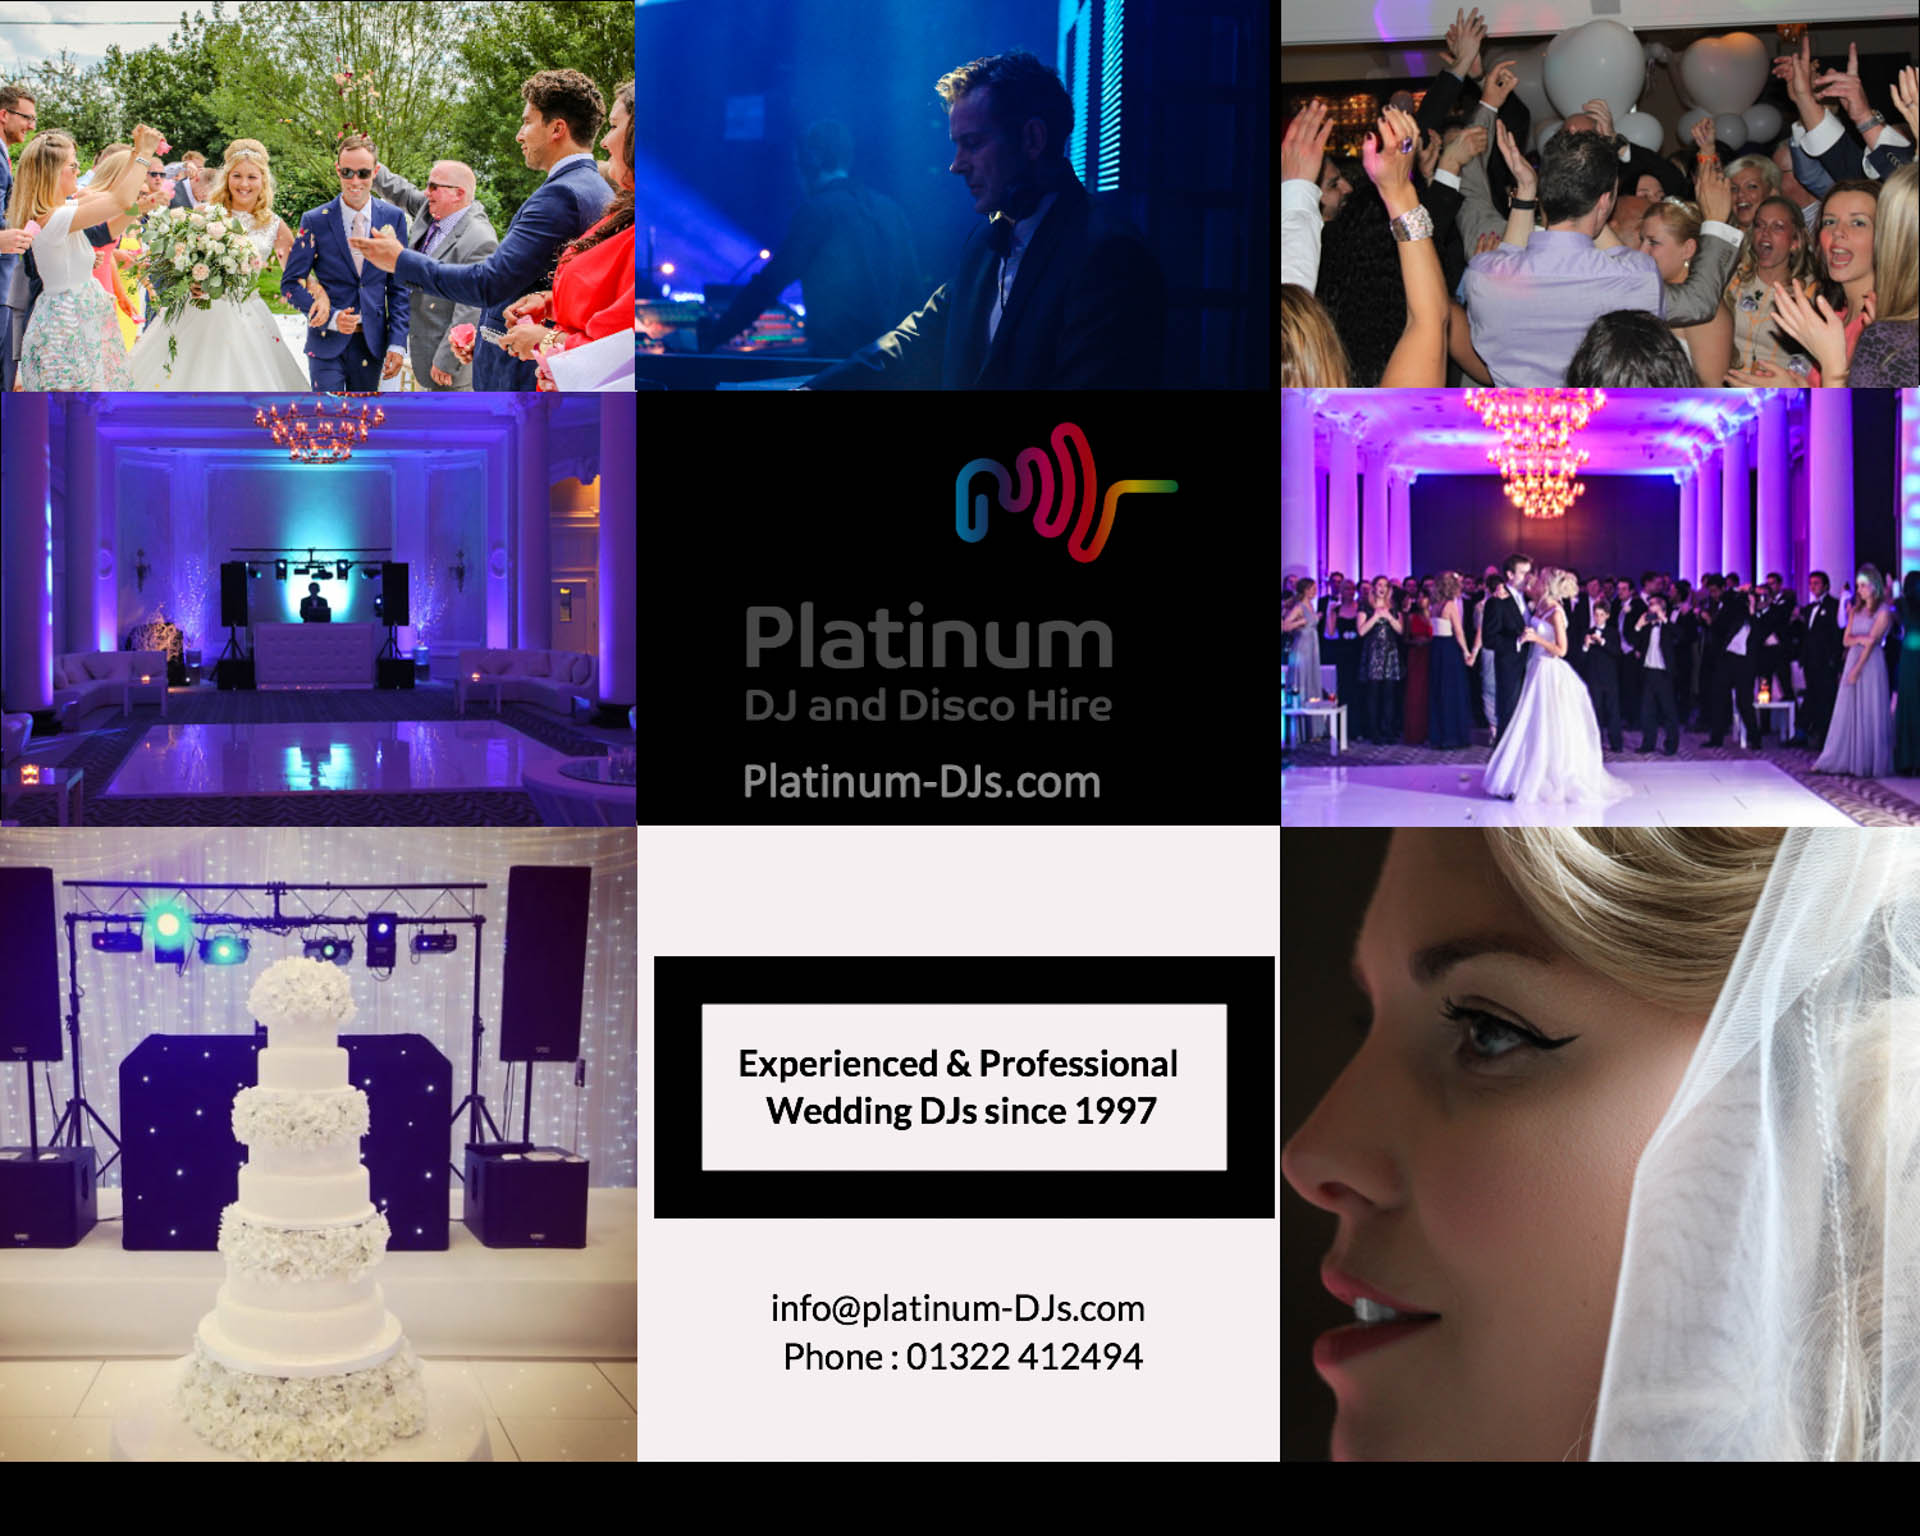 Platinum DJs has been providing professional and experienced DJs since 1997.